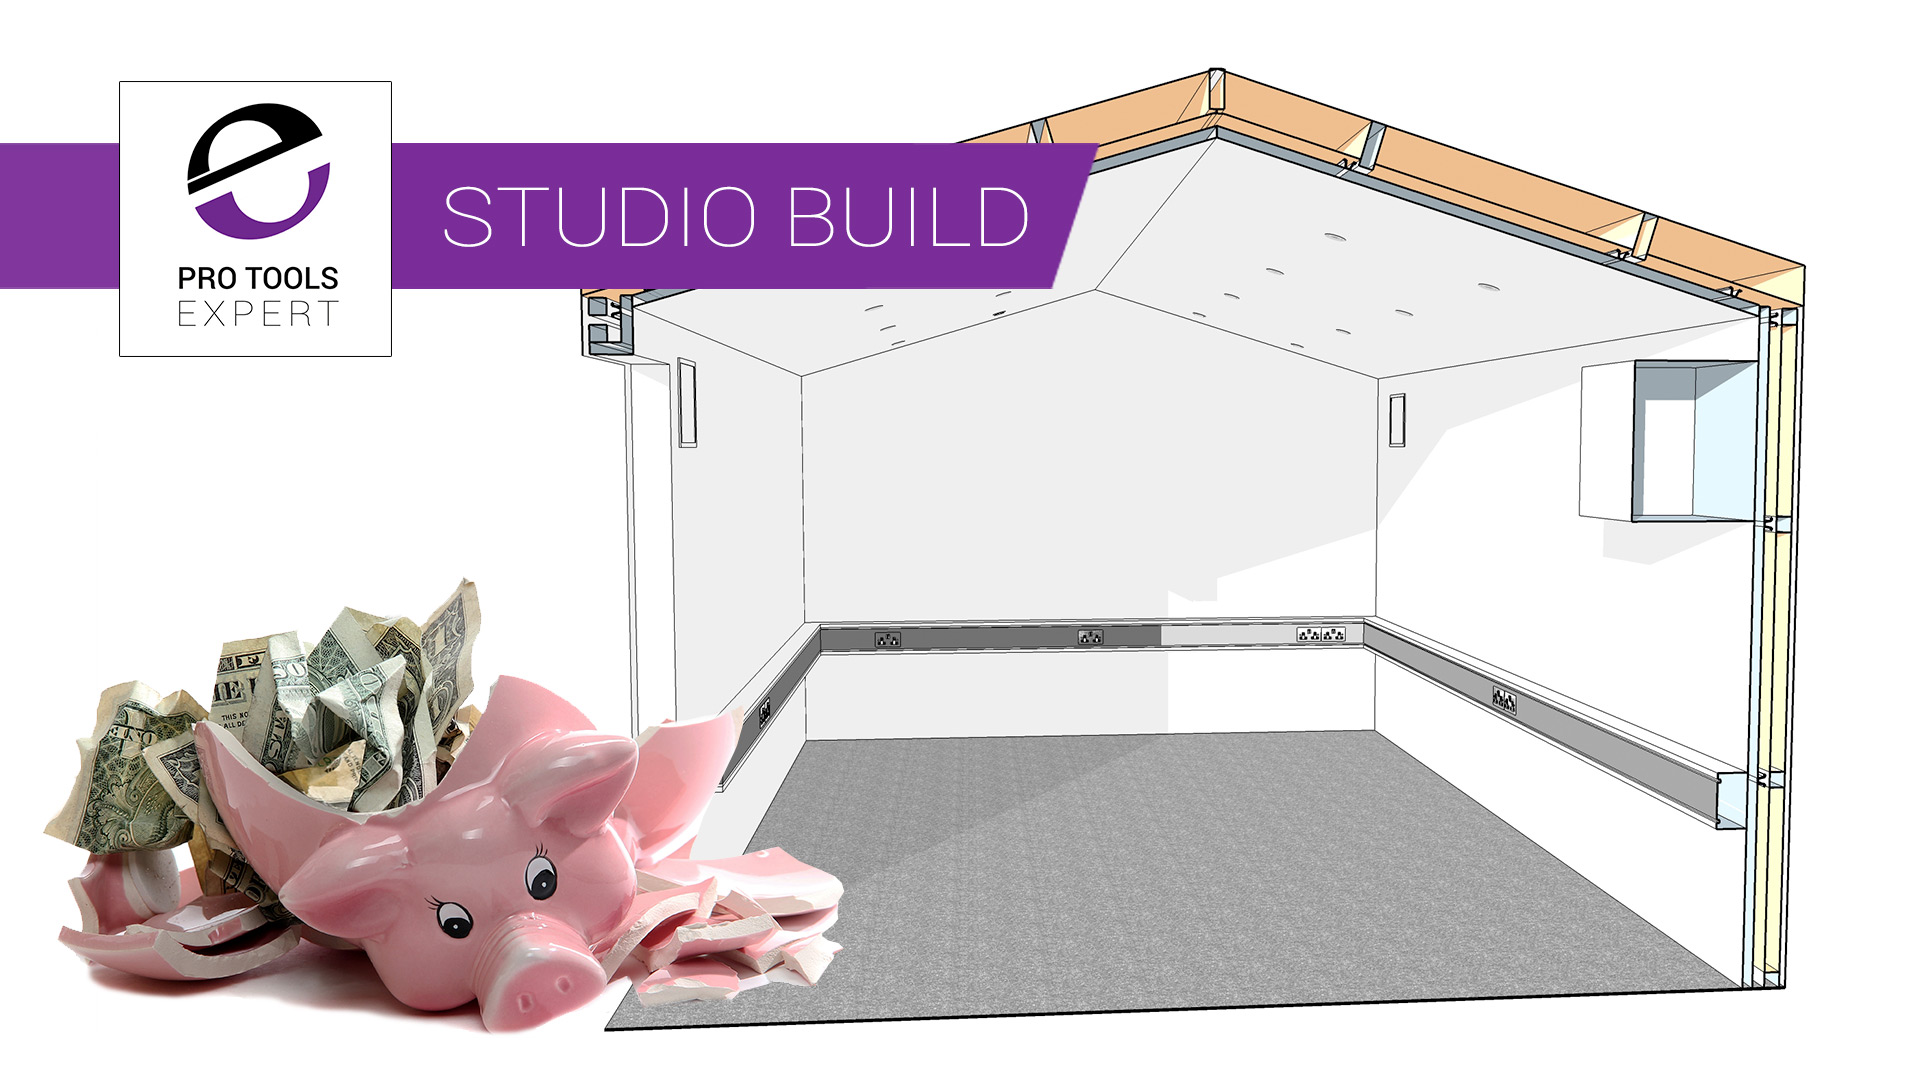 studio-build-budget-estimates-cost-how-much.jpg